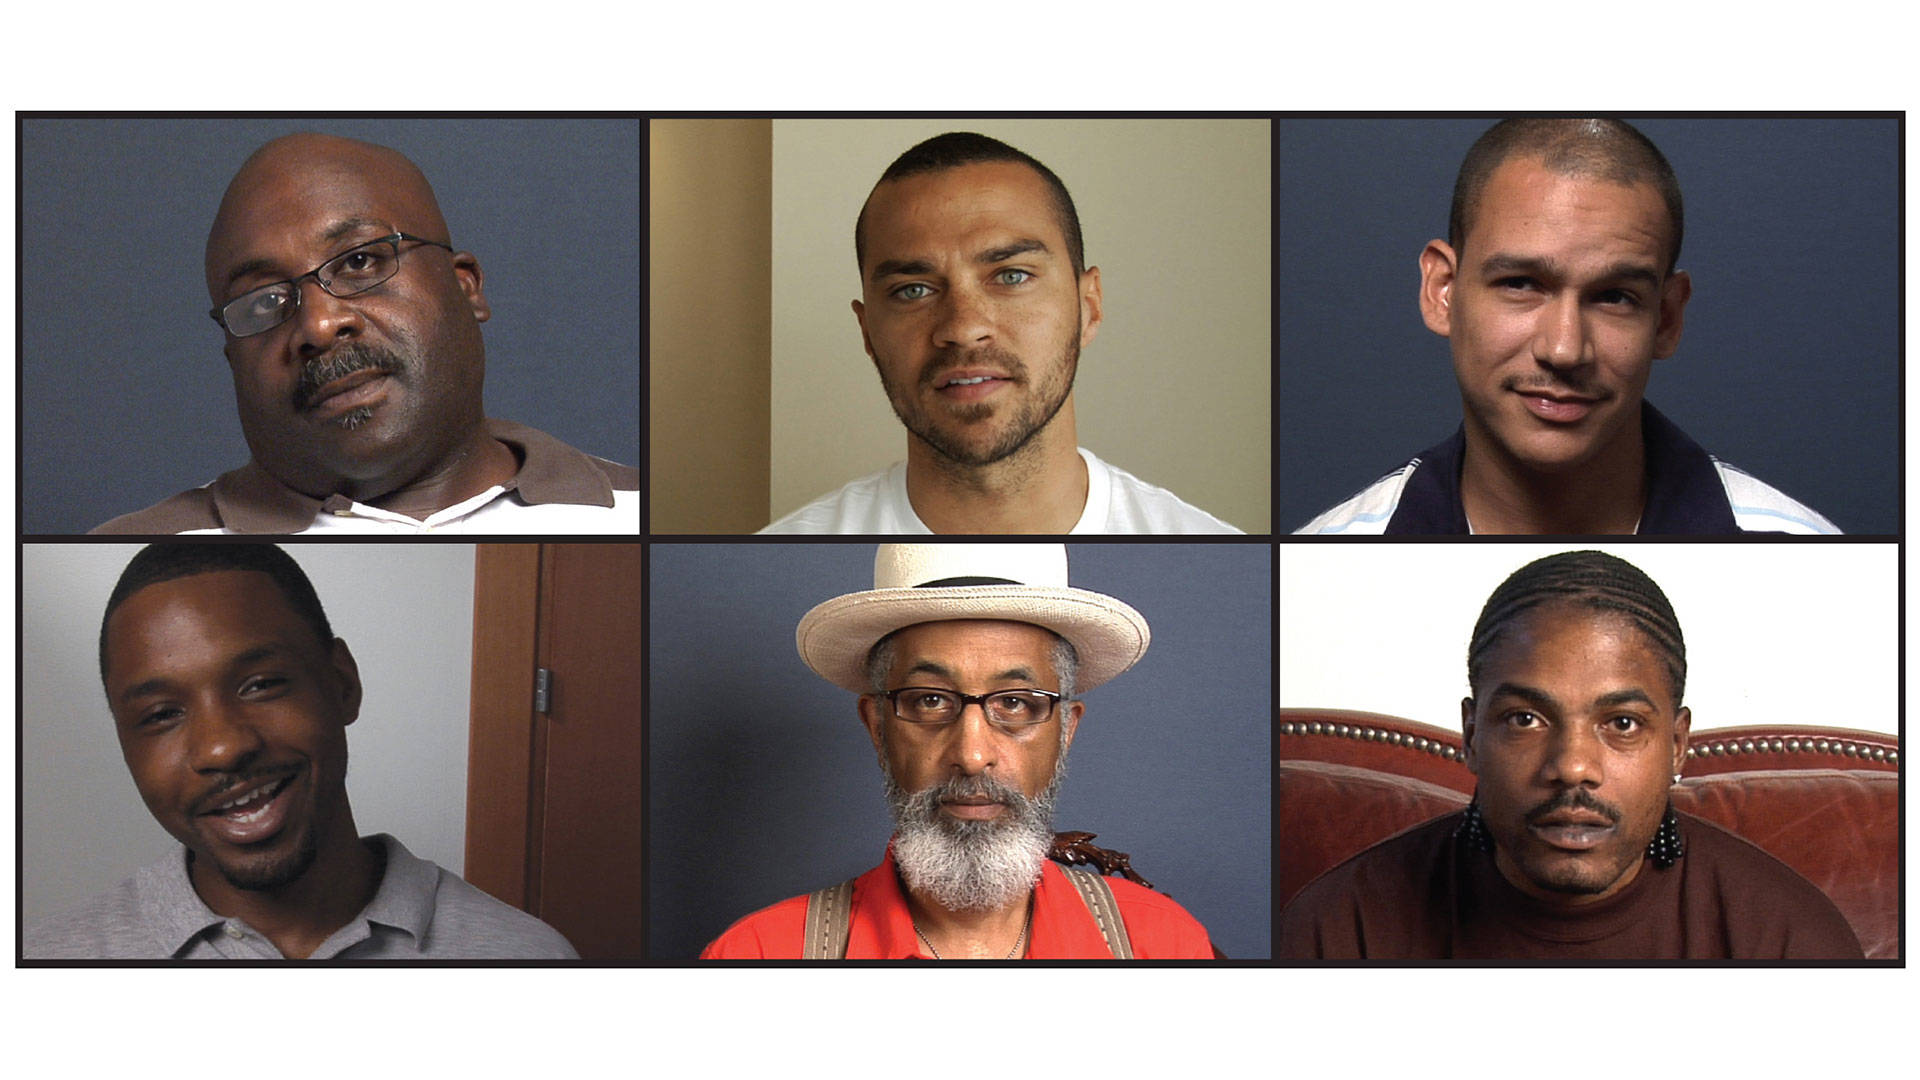 A still from Question Bridge: Black Males, created by Chris Johnson, Hank Willis Thomas, Bayete Ross Smith, and Kamal Sinclair.